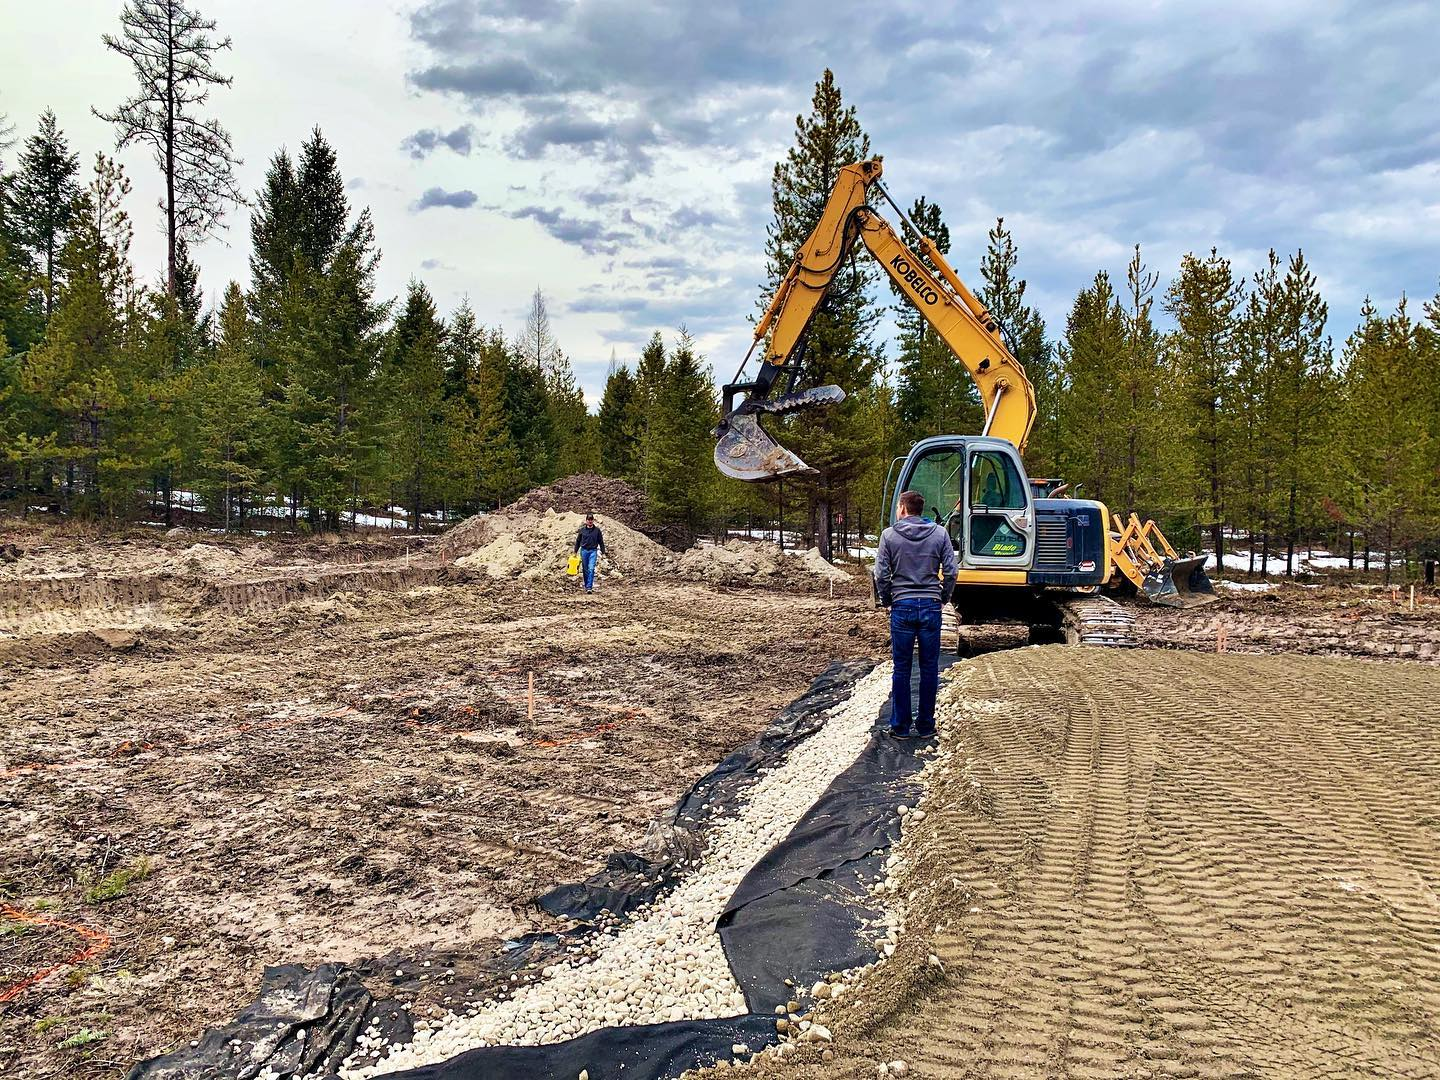 Heading into the weekend...new road, new foundation ready to start. whitefish custom home builder